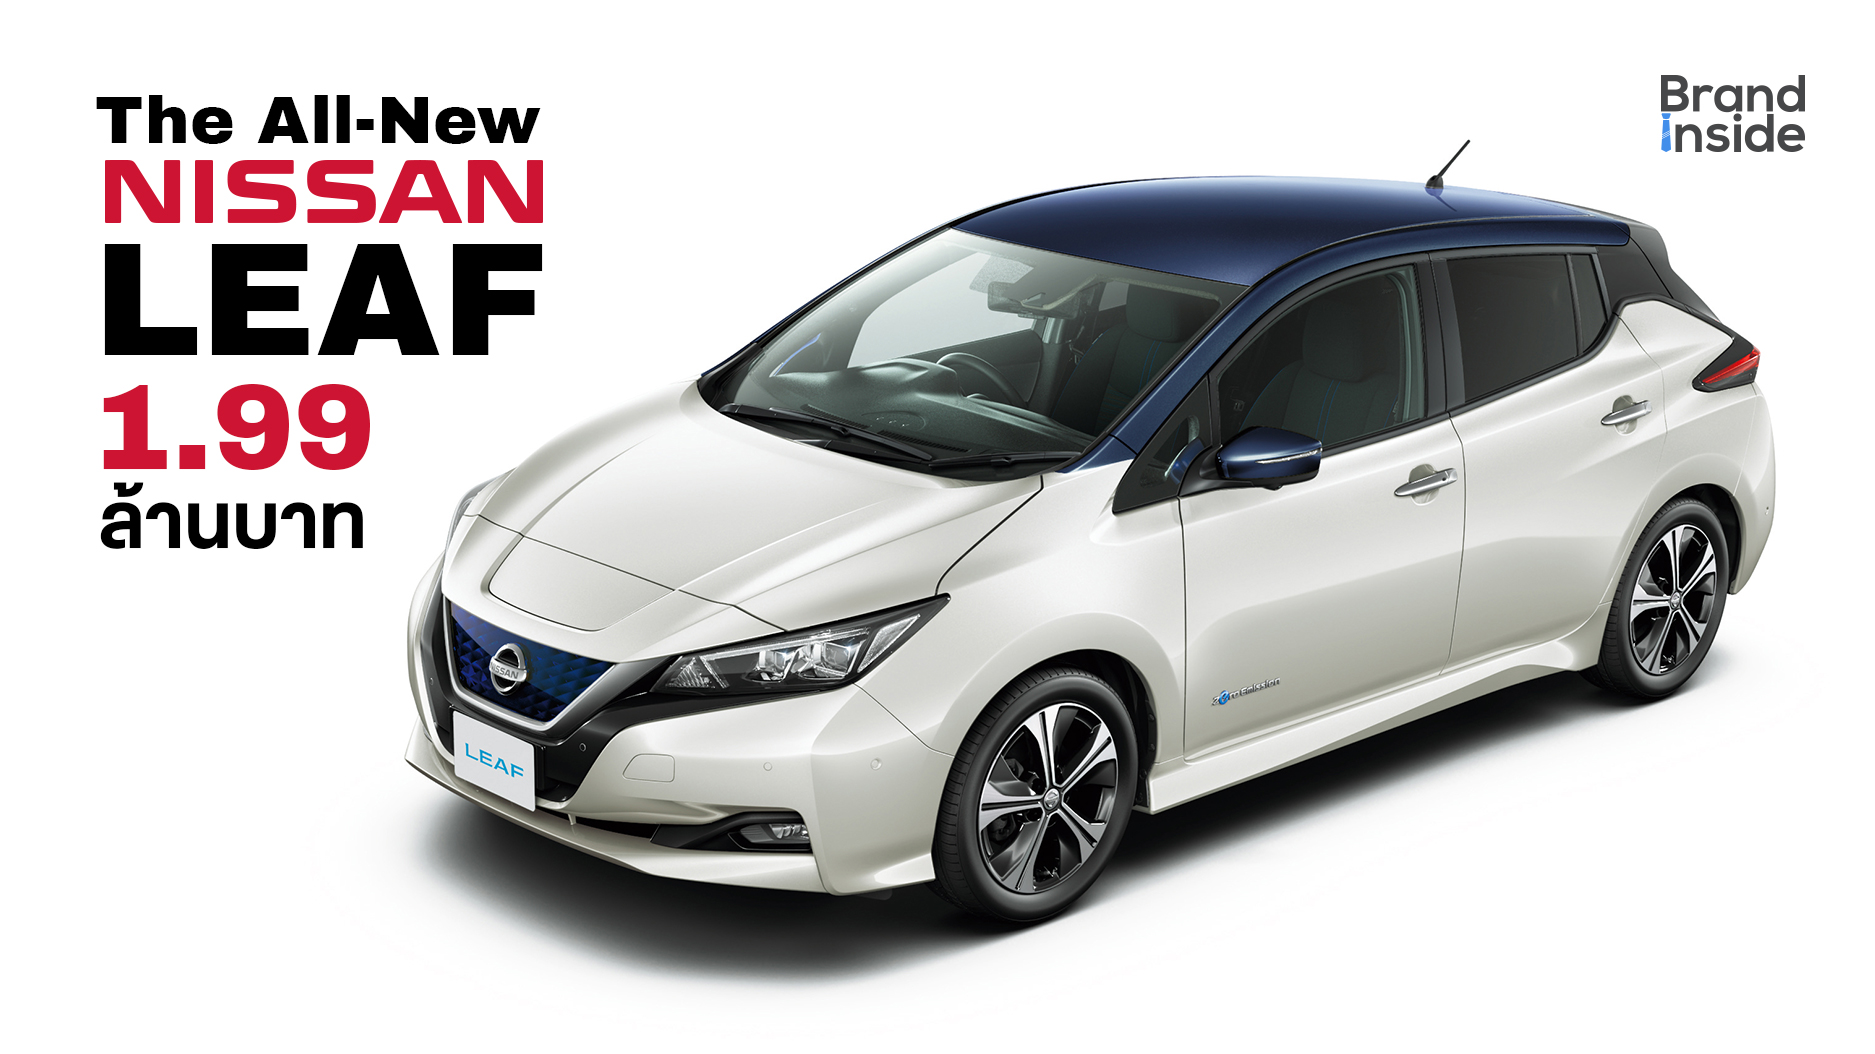 nissan leaf brand inside. Black Bedroom Furniture Sets. Home Design Ideas